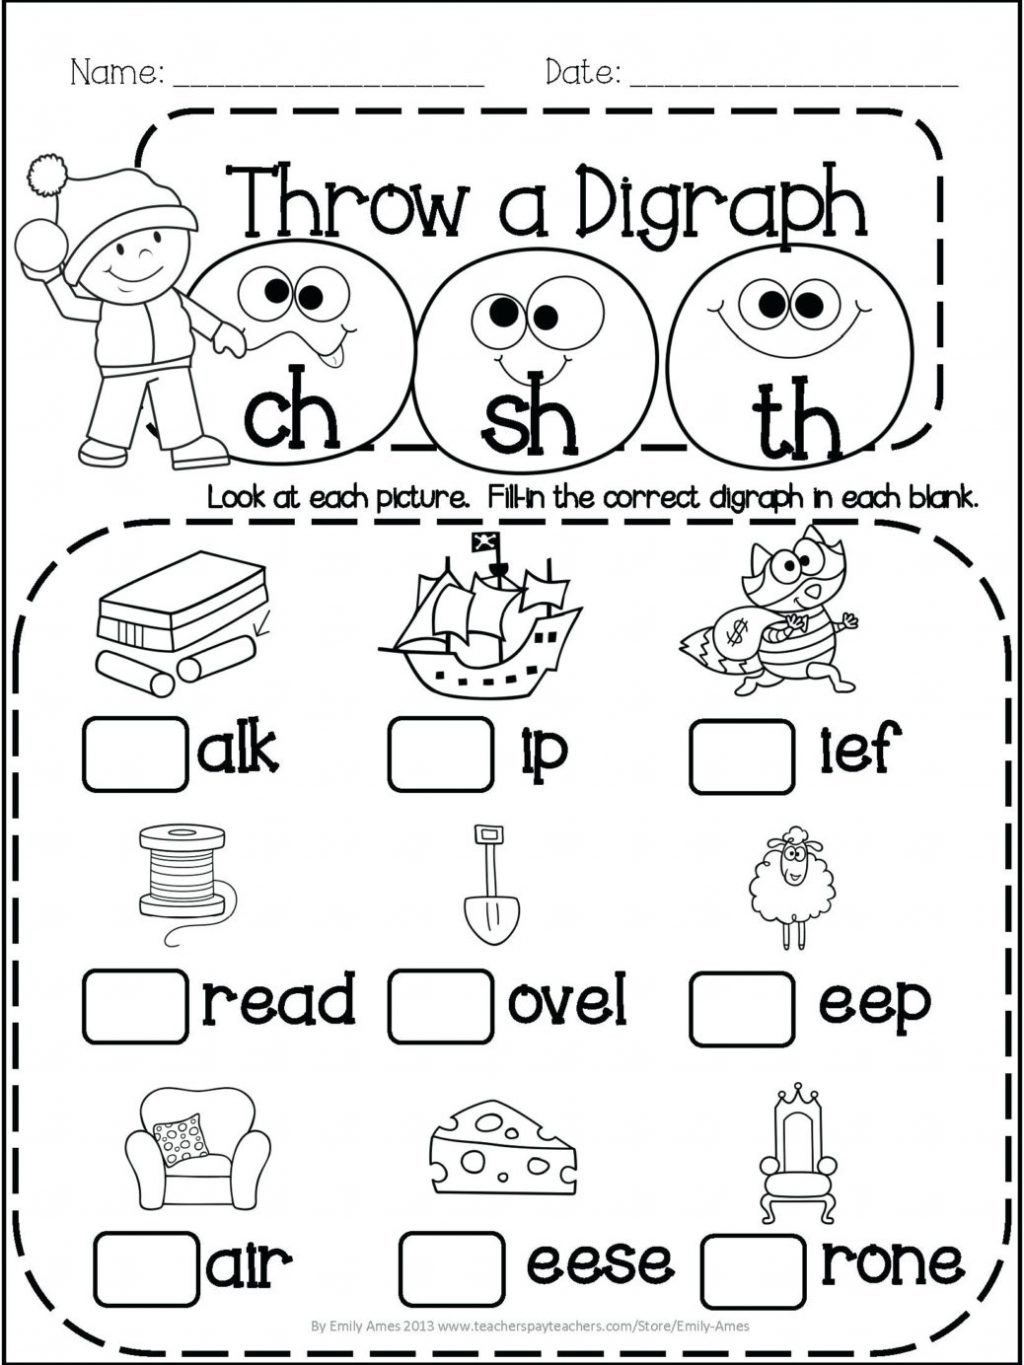 1st Grade Phonics Worksheets Pdf Worksheet Awesome 1st Grade Phonicsksheets Image Ideas